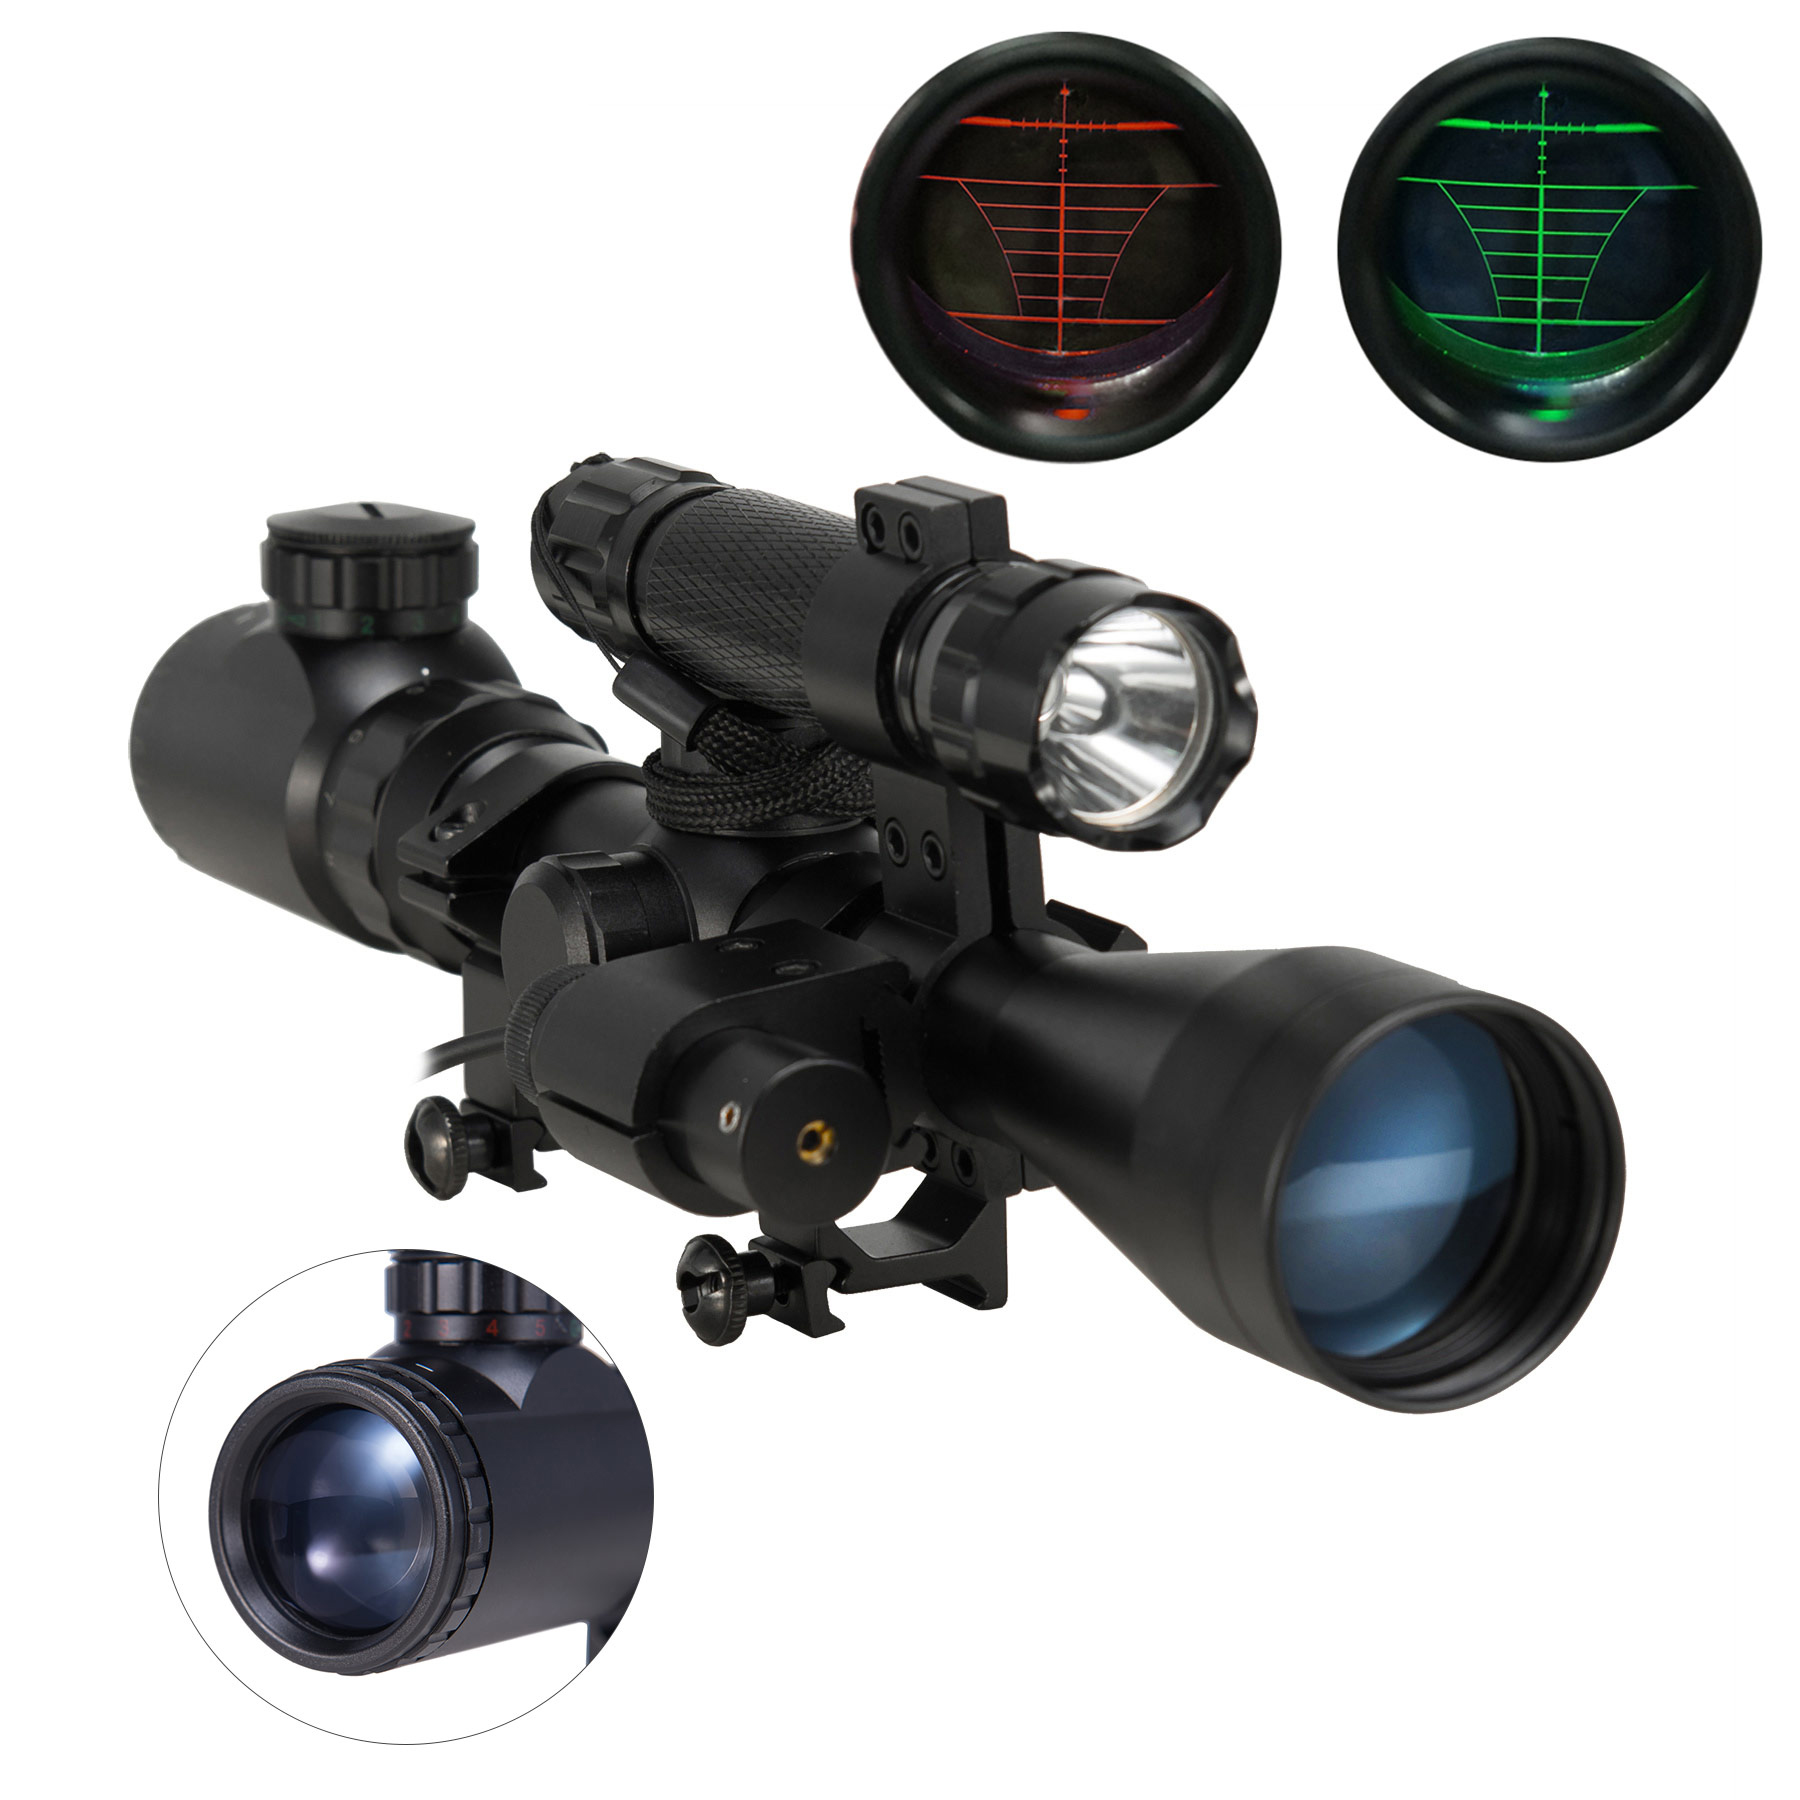 Pinty 3 in 1 Tactical 3-9X40 Red Green Mil-Dot Illumination Reticle Riflescope Scope Combo with Laser Sight and Torch for Hunting